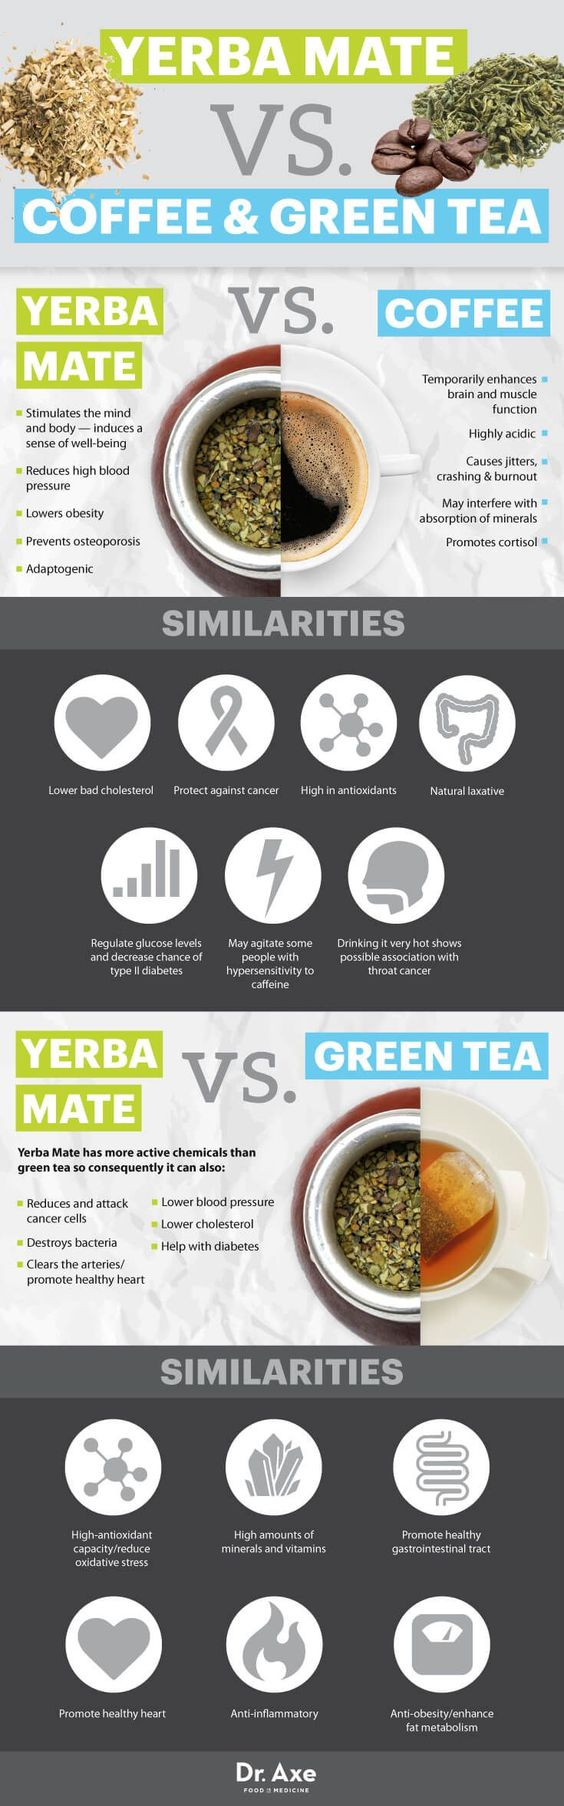 Yerba mate vs. coffee & green tea - Dr. Axe http://www.draxe.com #health #holistic #natural